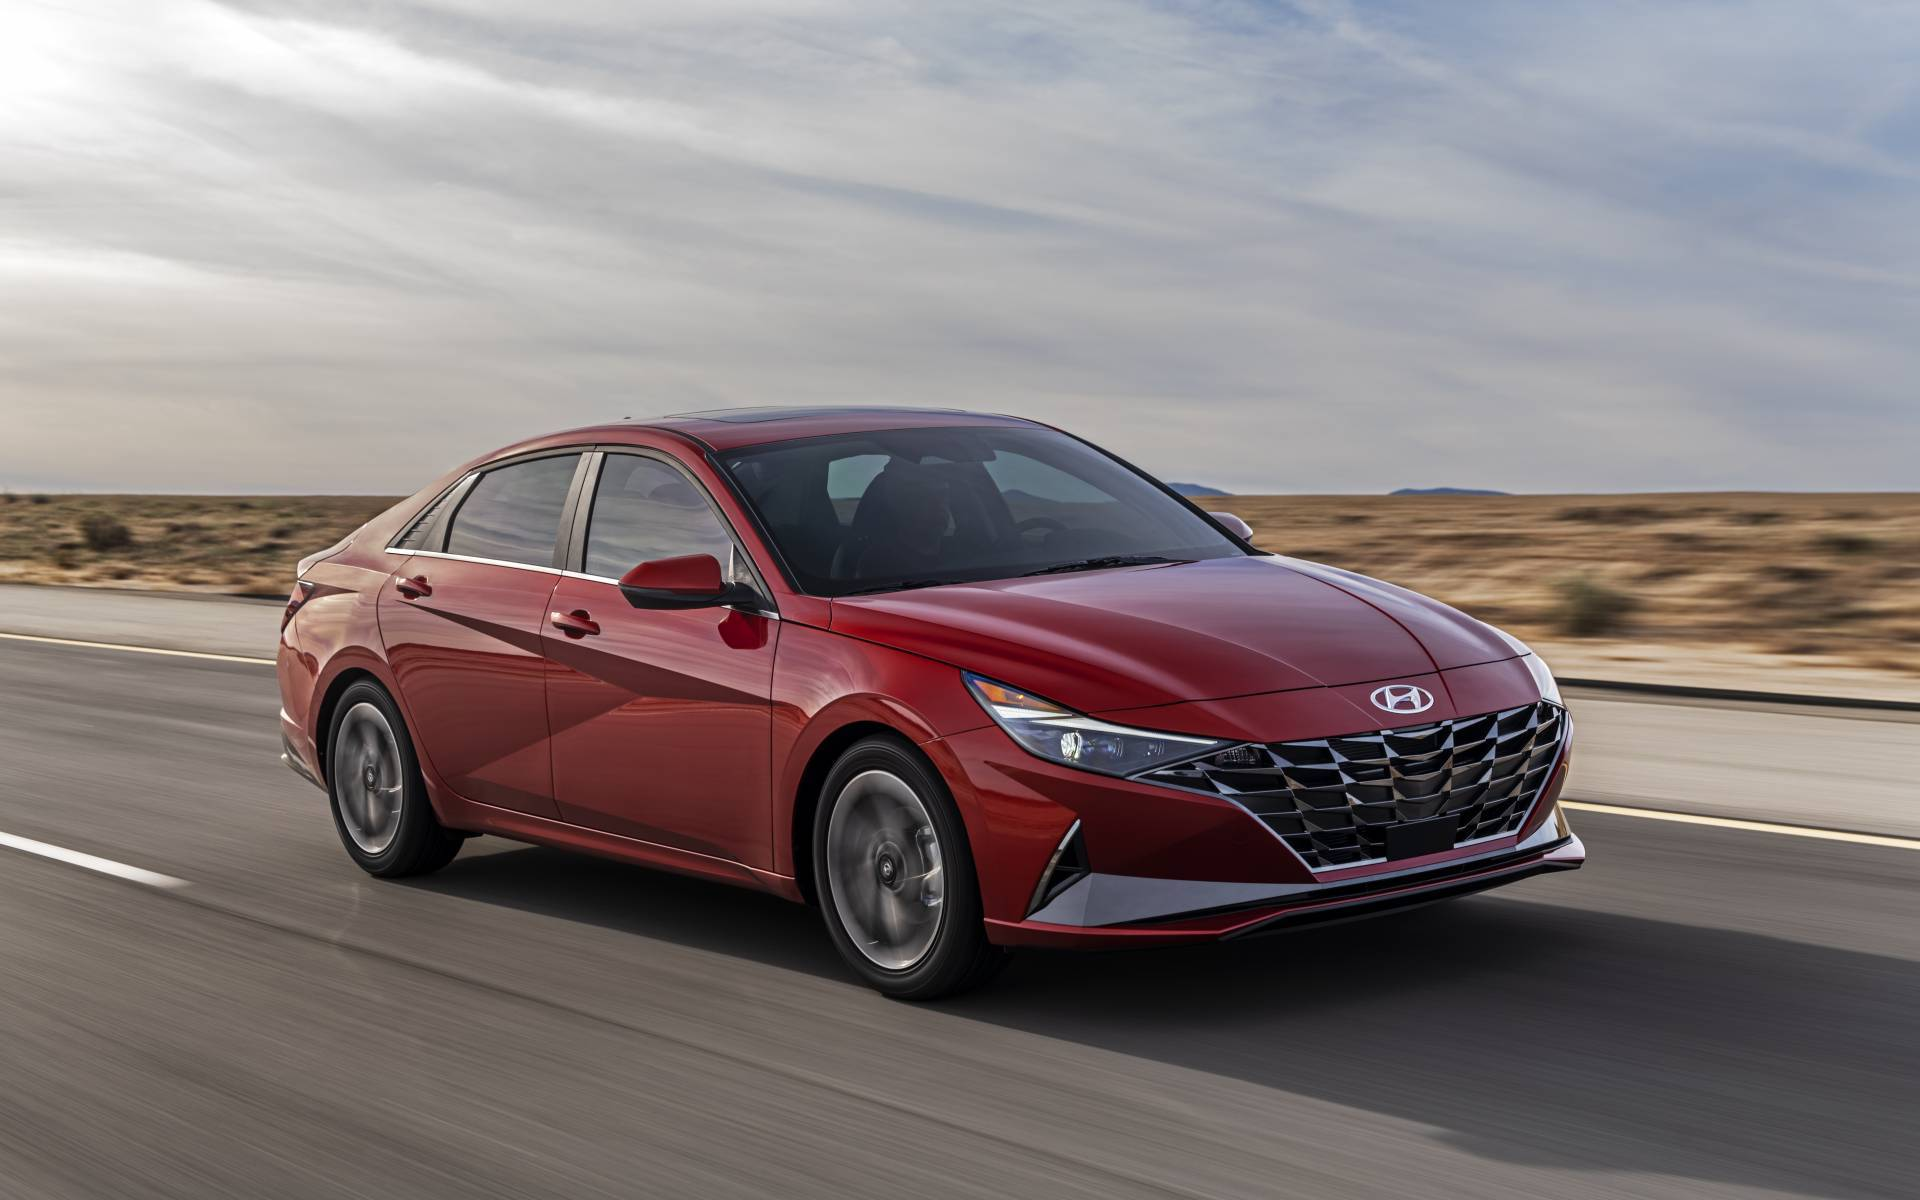 Five Things to Know About the 2021 Hyundai Elantra - The Car Guide